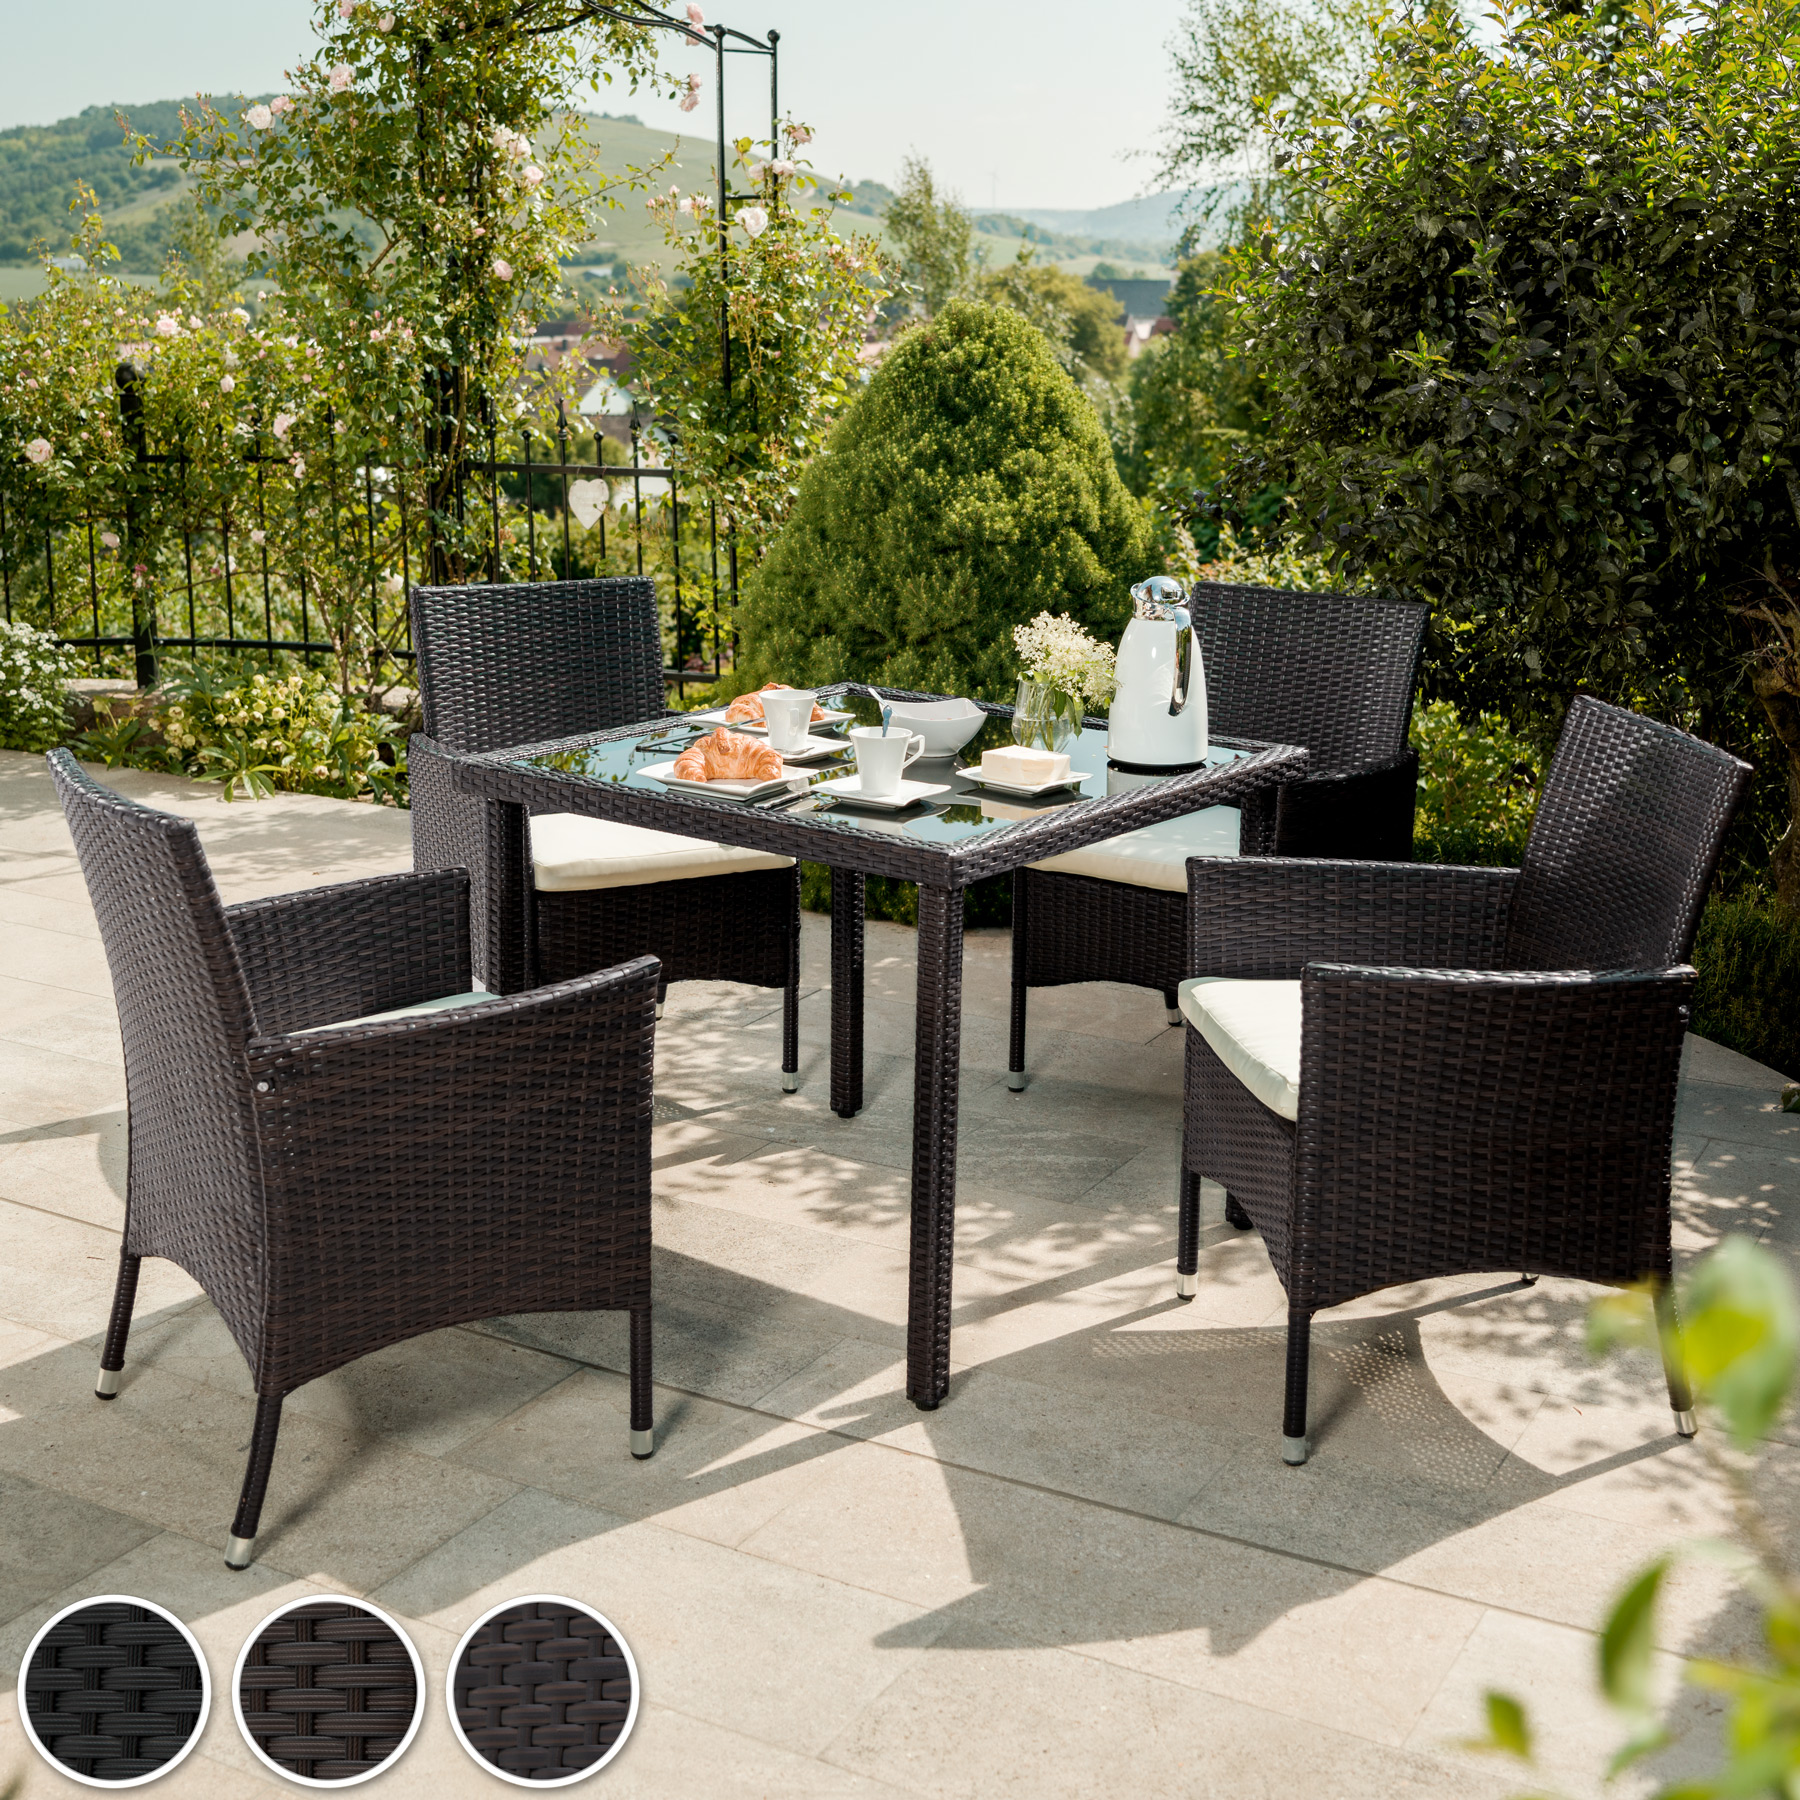 4 Seater Table Rattan Garden Furniture Dining Chairs Set